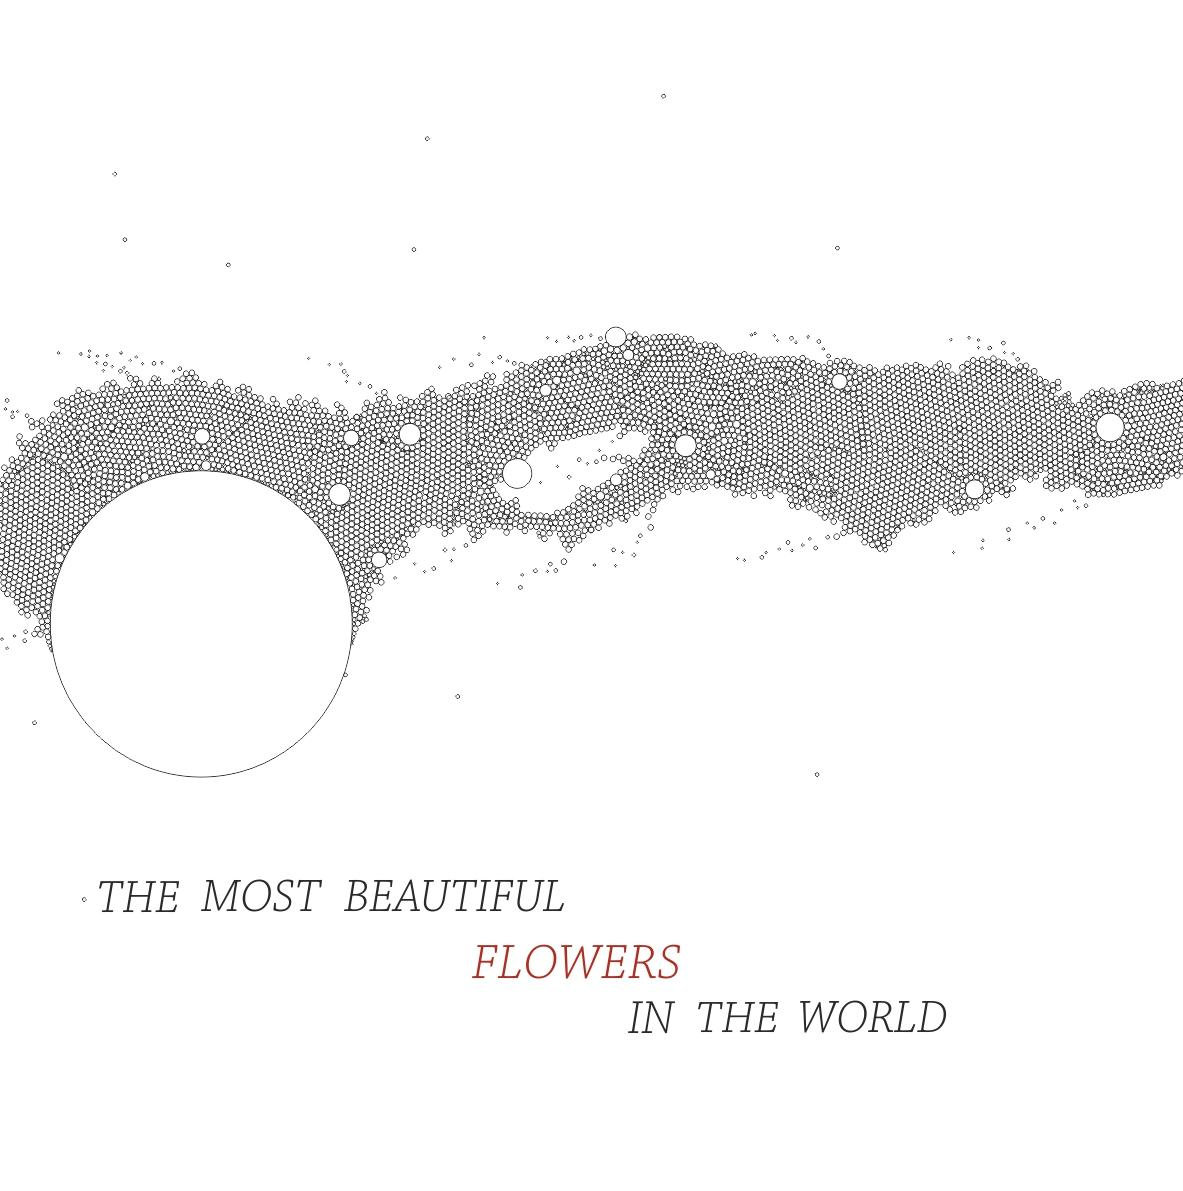 The most beautiful flowers in the world kib the most beautiful flowers in the world by kib izmirmasajfo